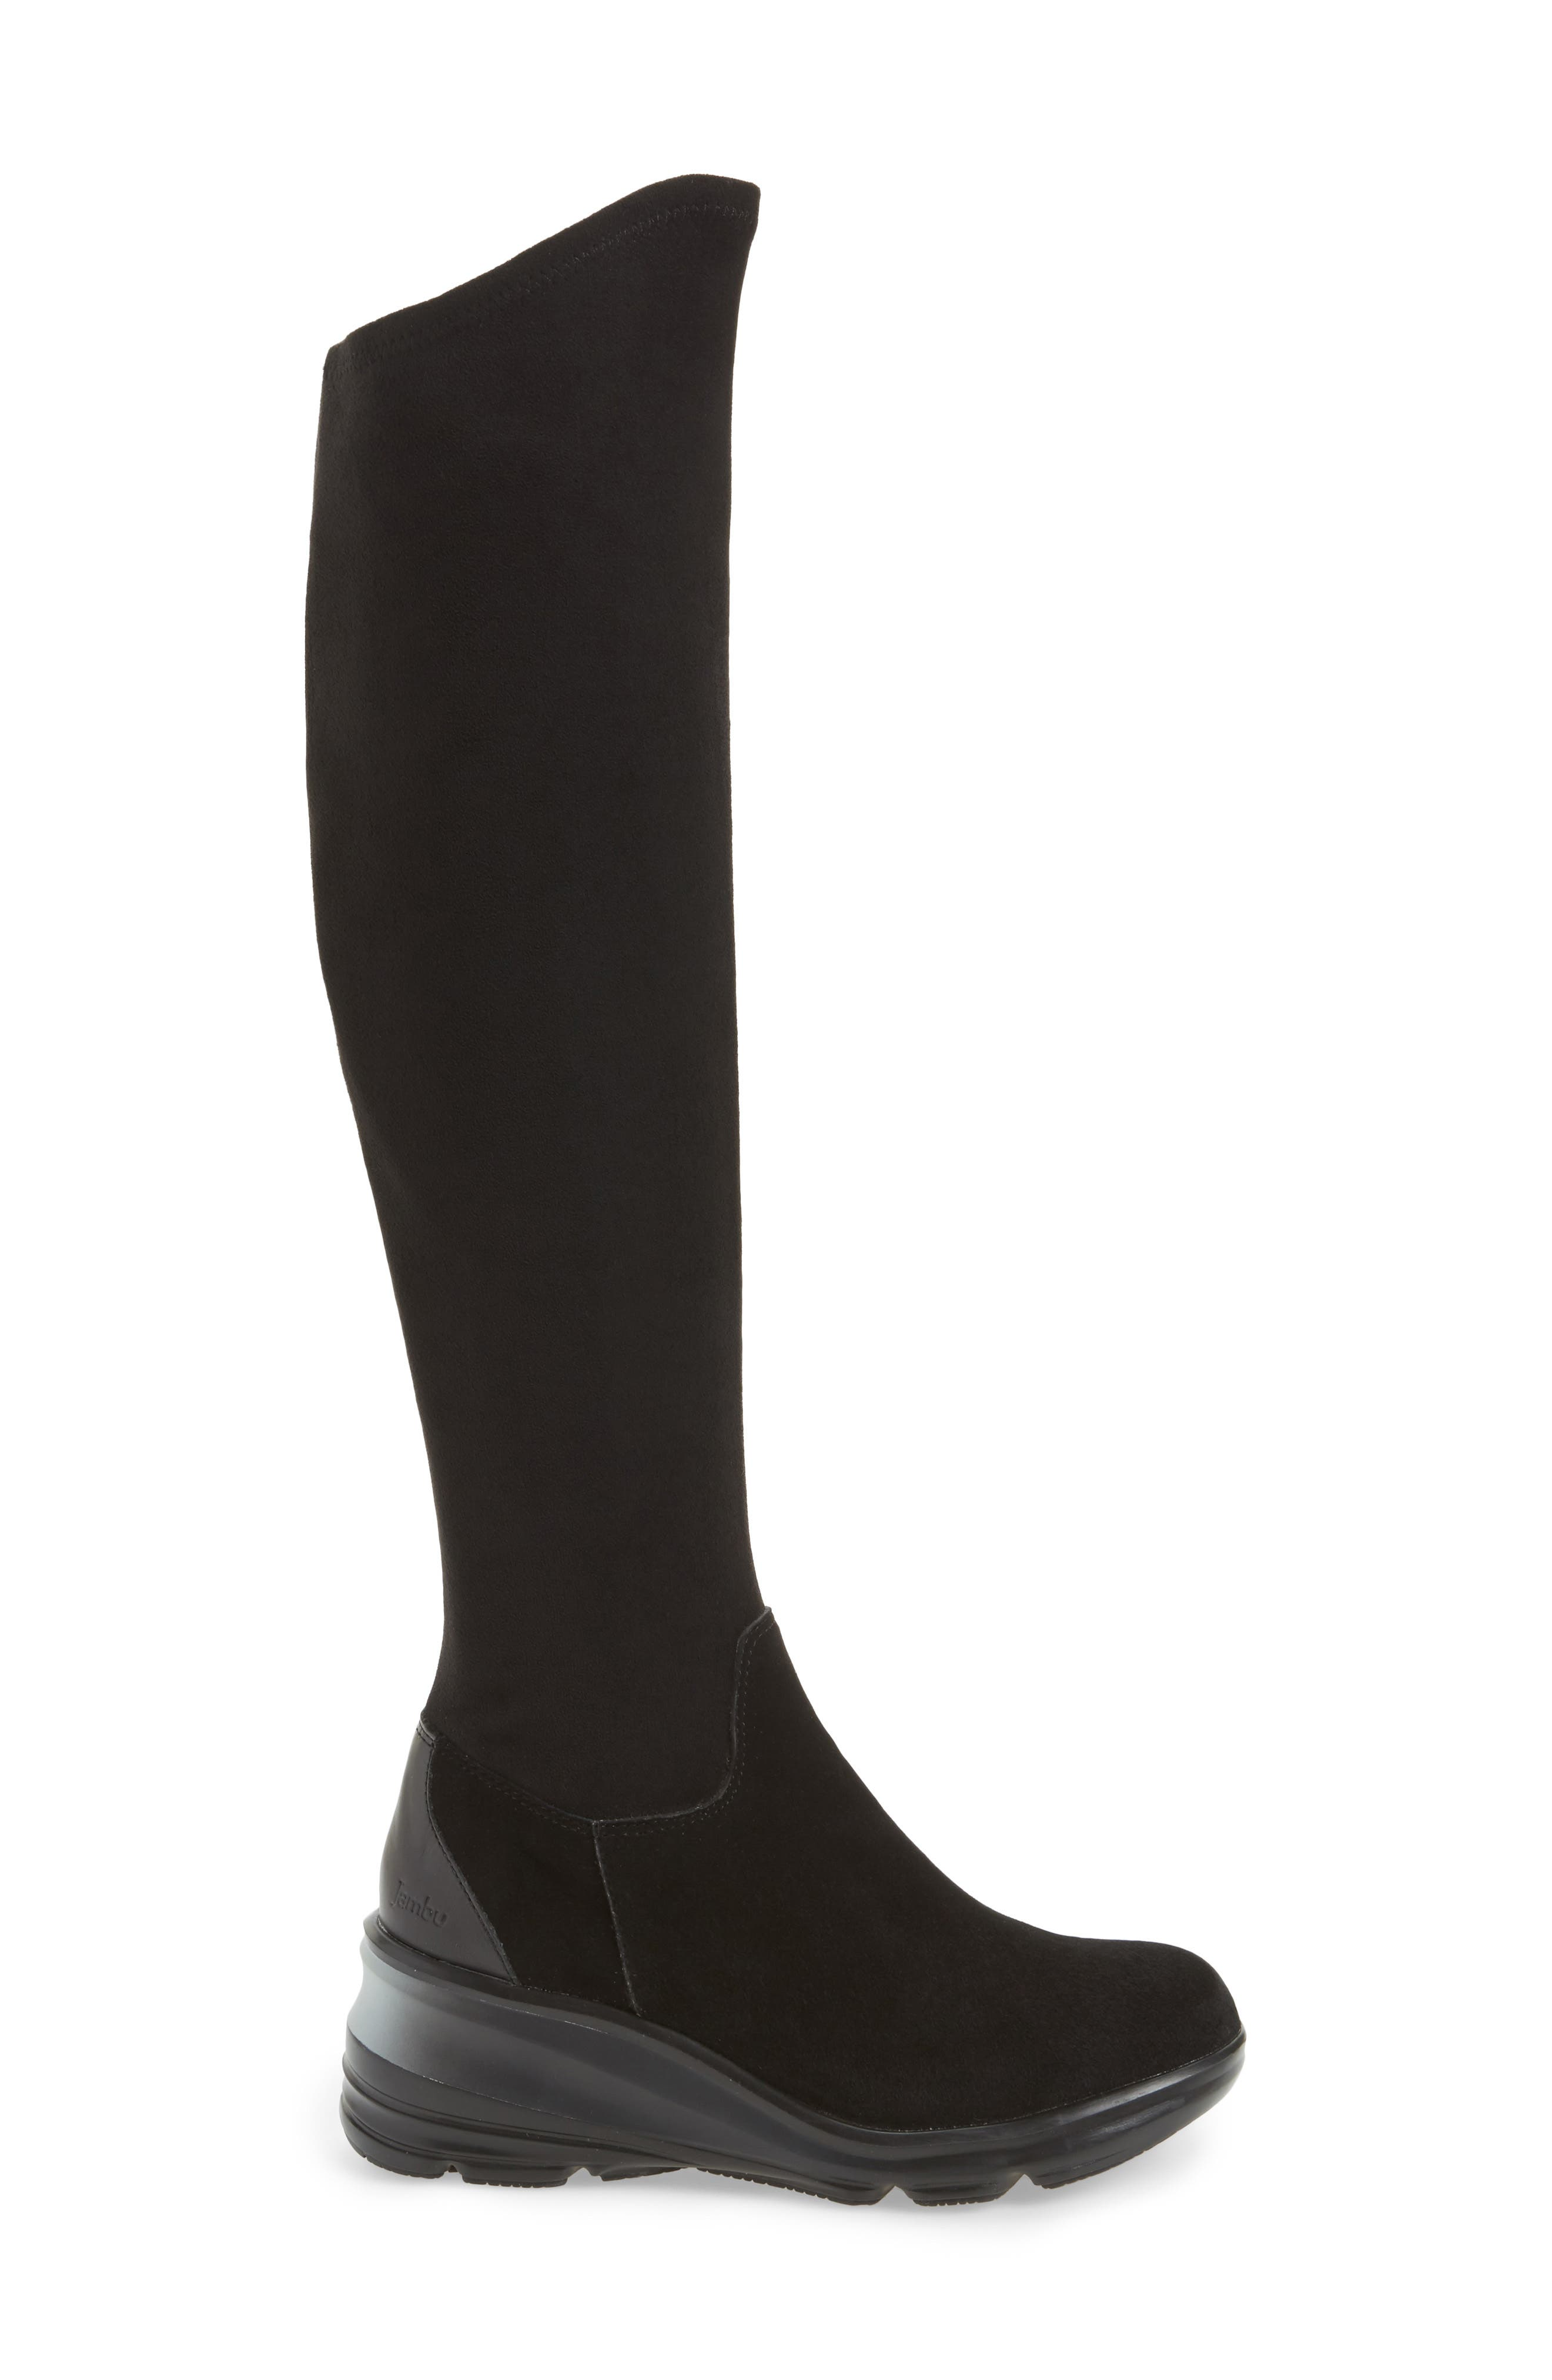 Kendra Over the Knee Water-Resistant Boot,                             Alternate thumbnail 3, color,                             001